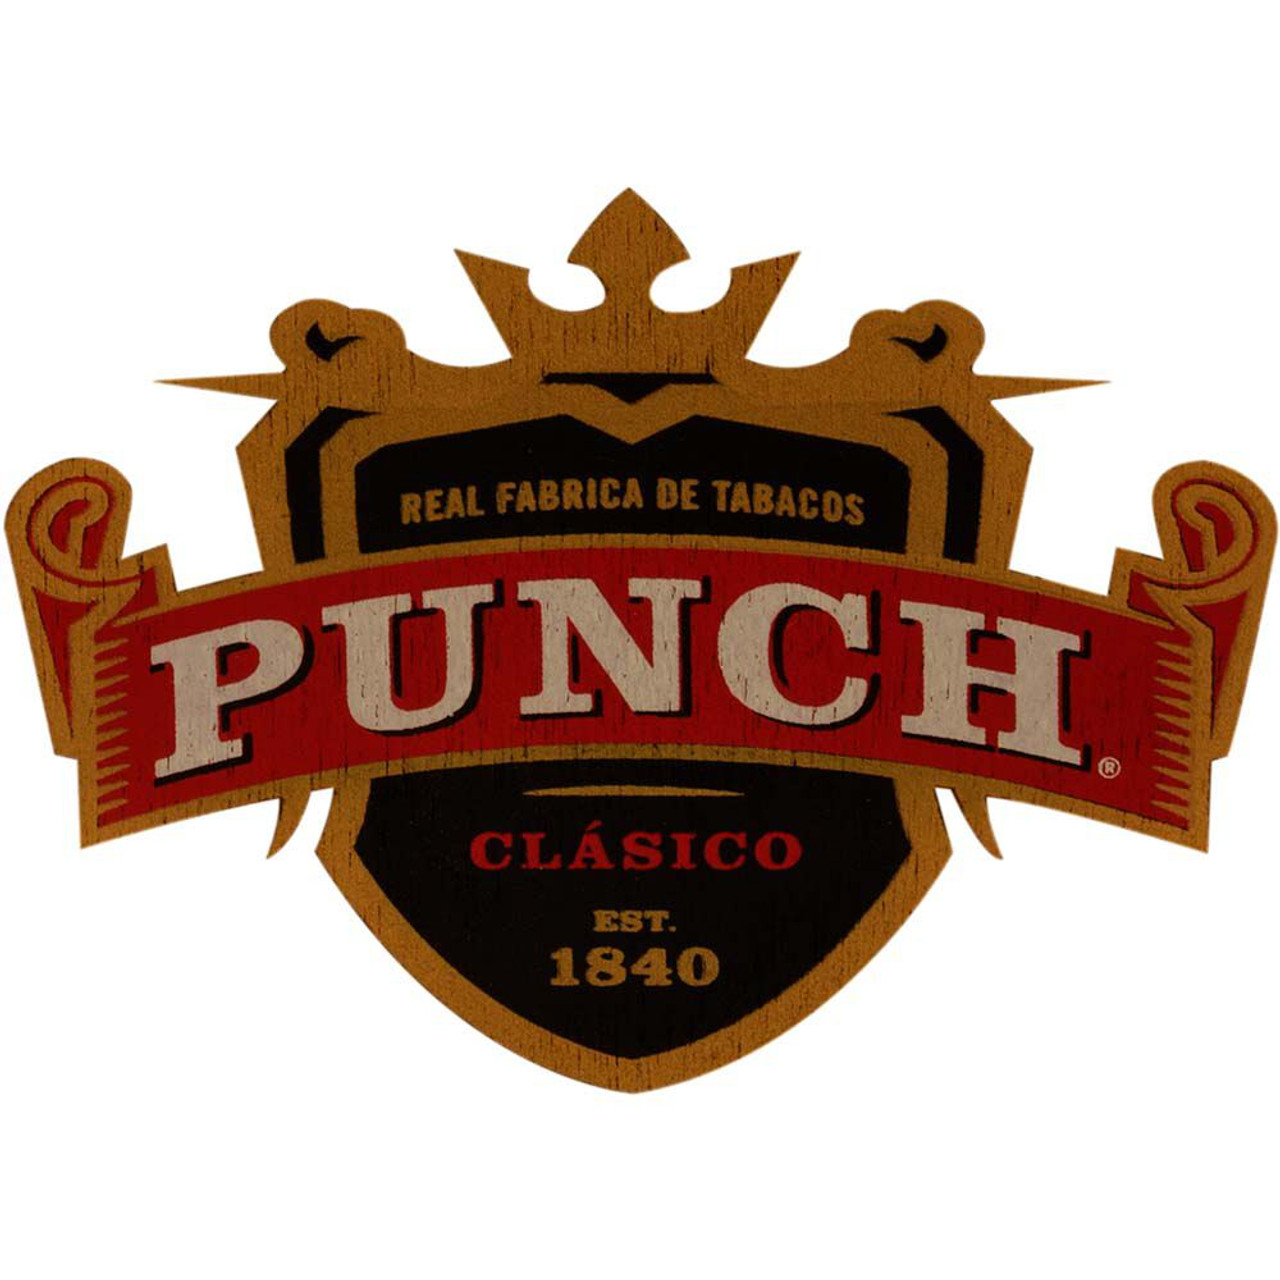 Punch Heritage Reserve Rothschilde Cigars - 4.5 x 50 (Box of 18)